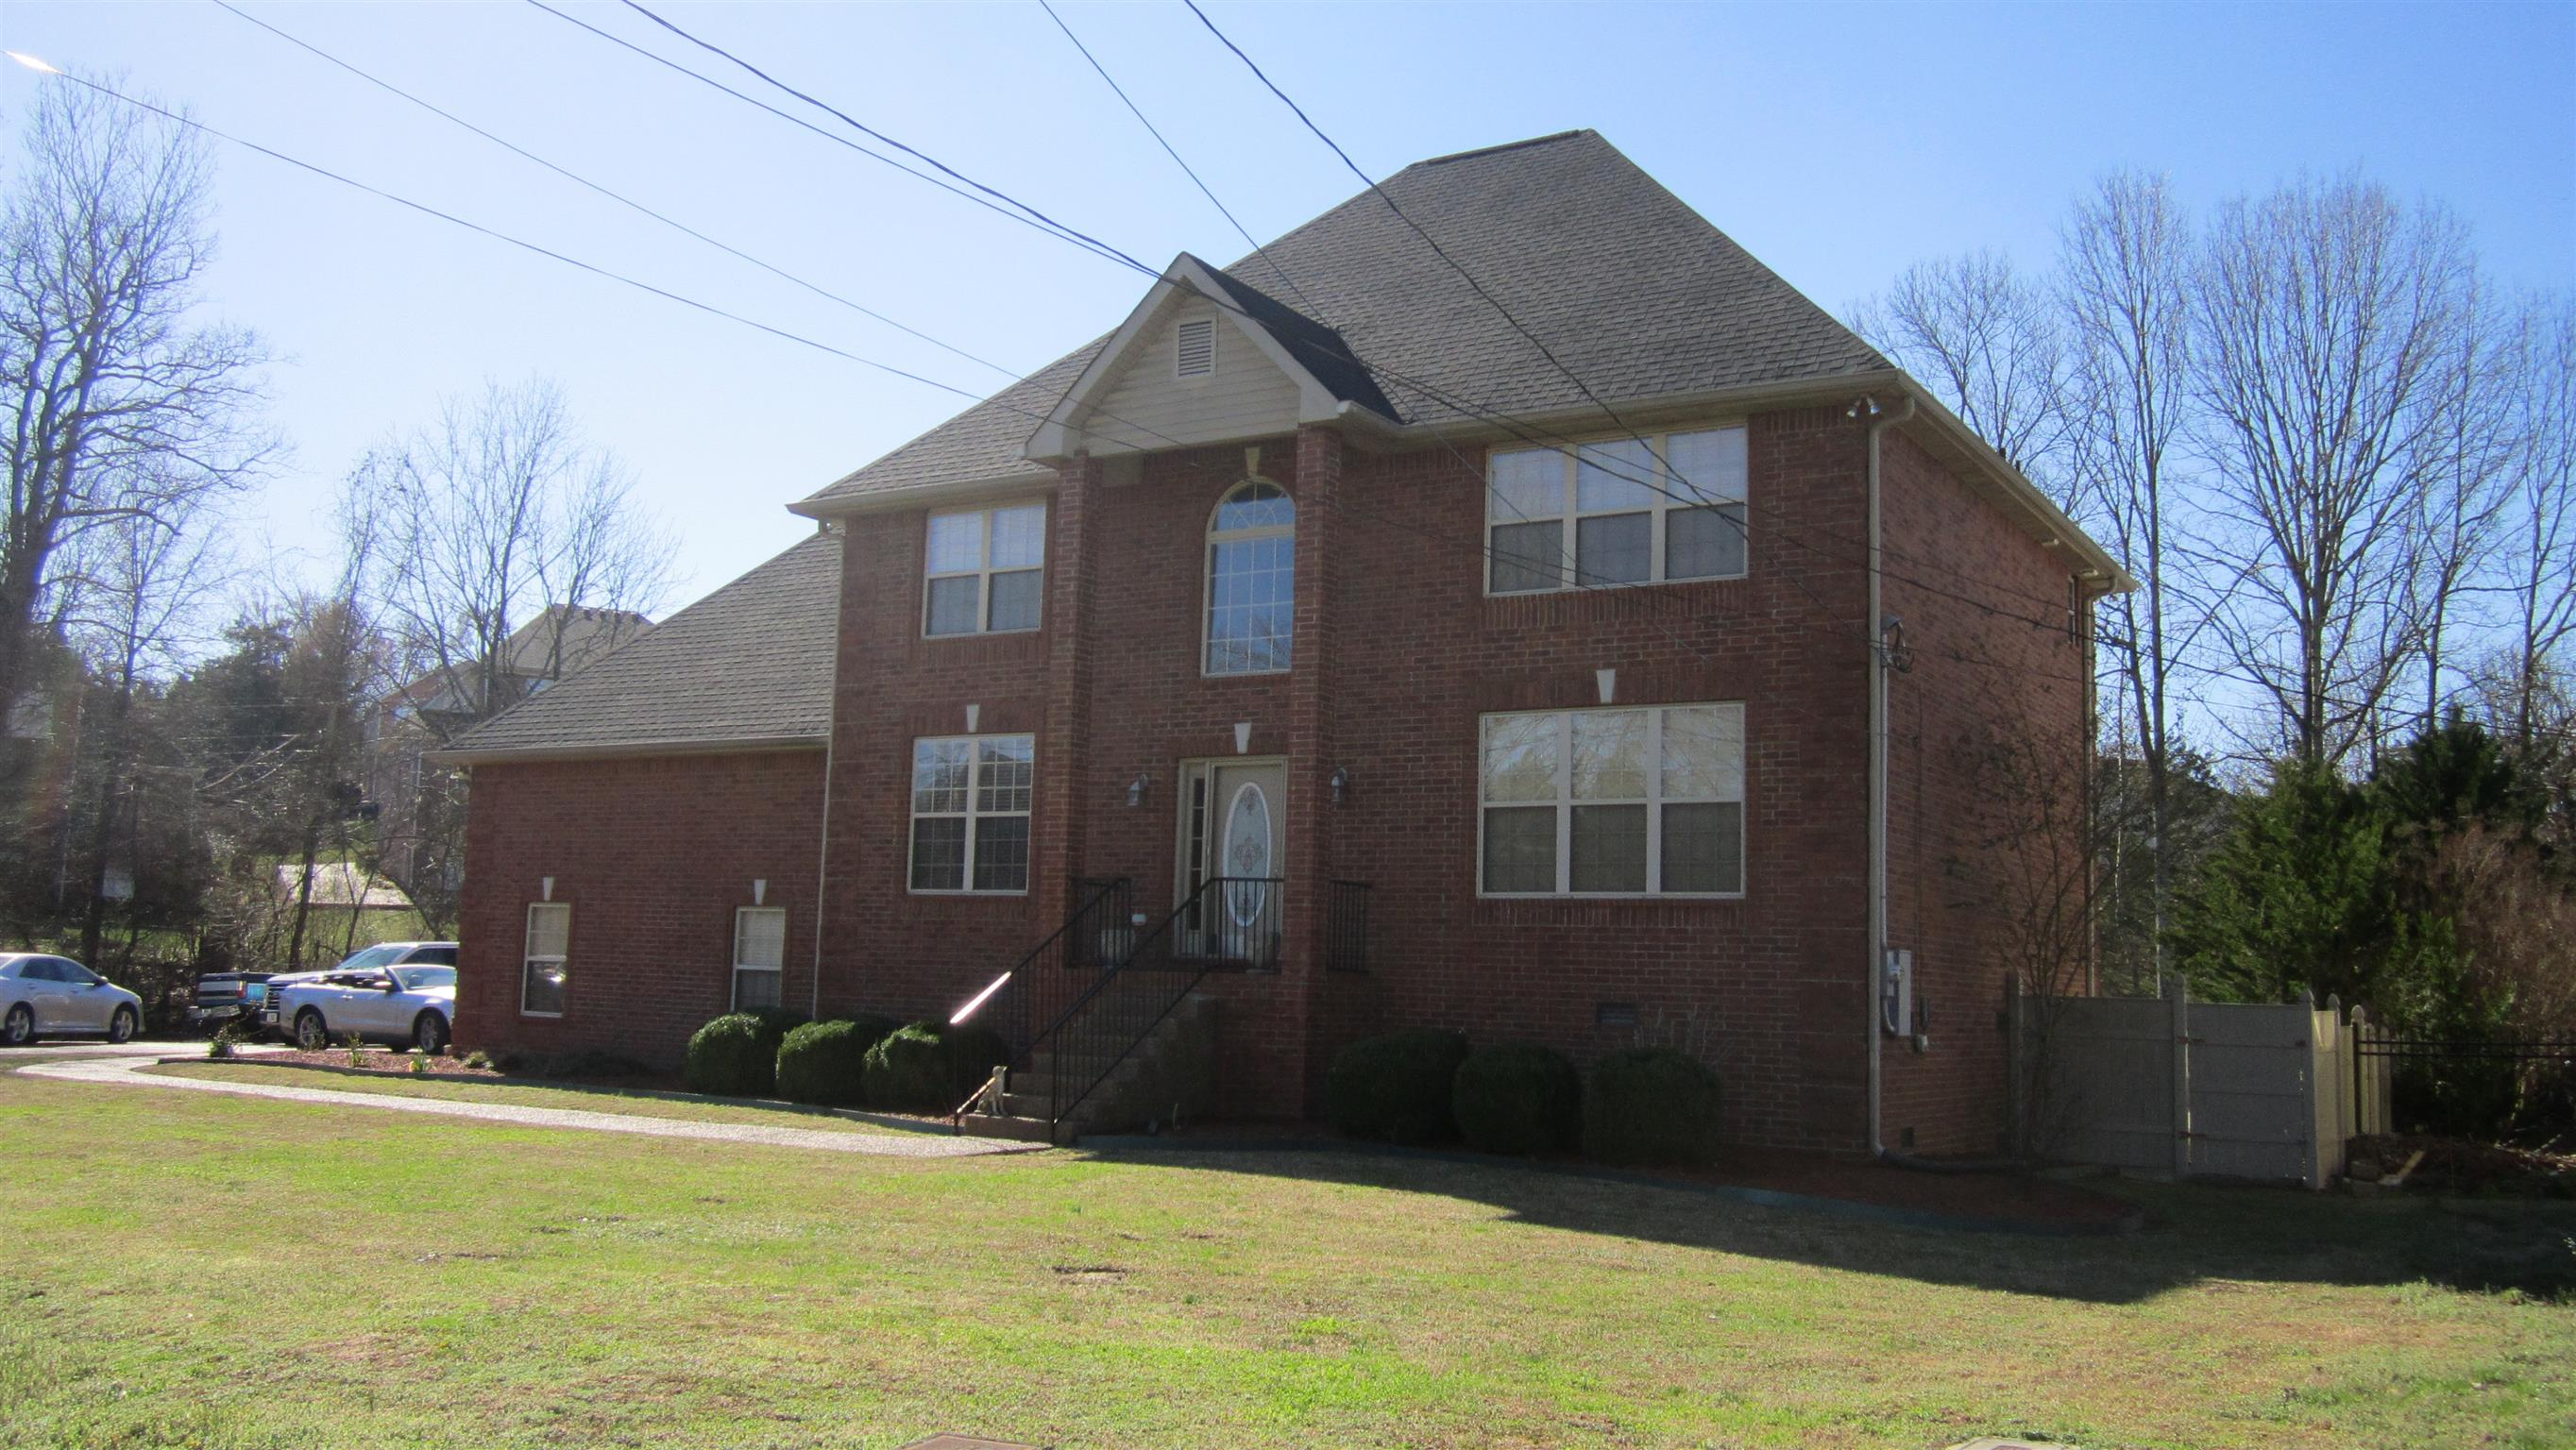 6178 N New Hope Rd, Hermitage, TN 37076 - Hermitage, TN real estate listing